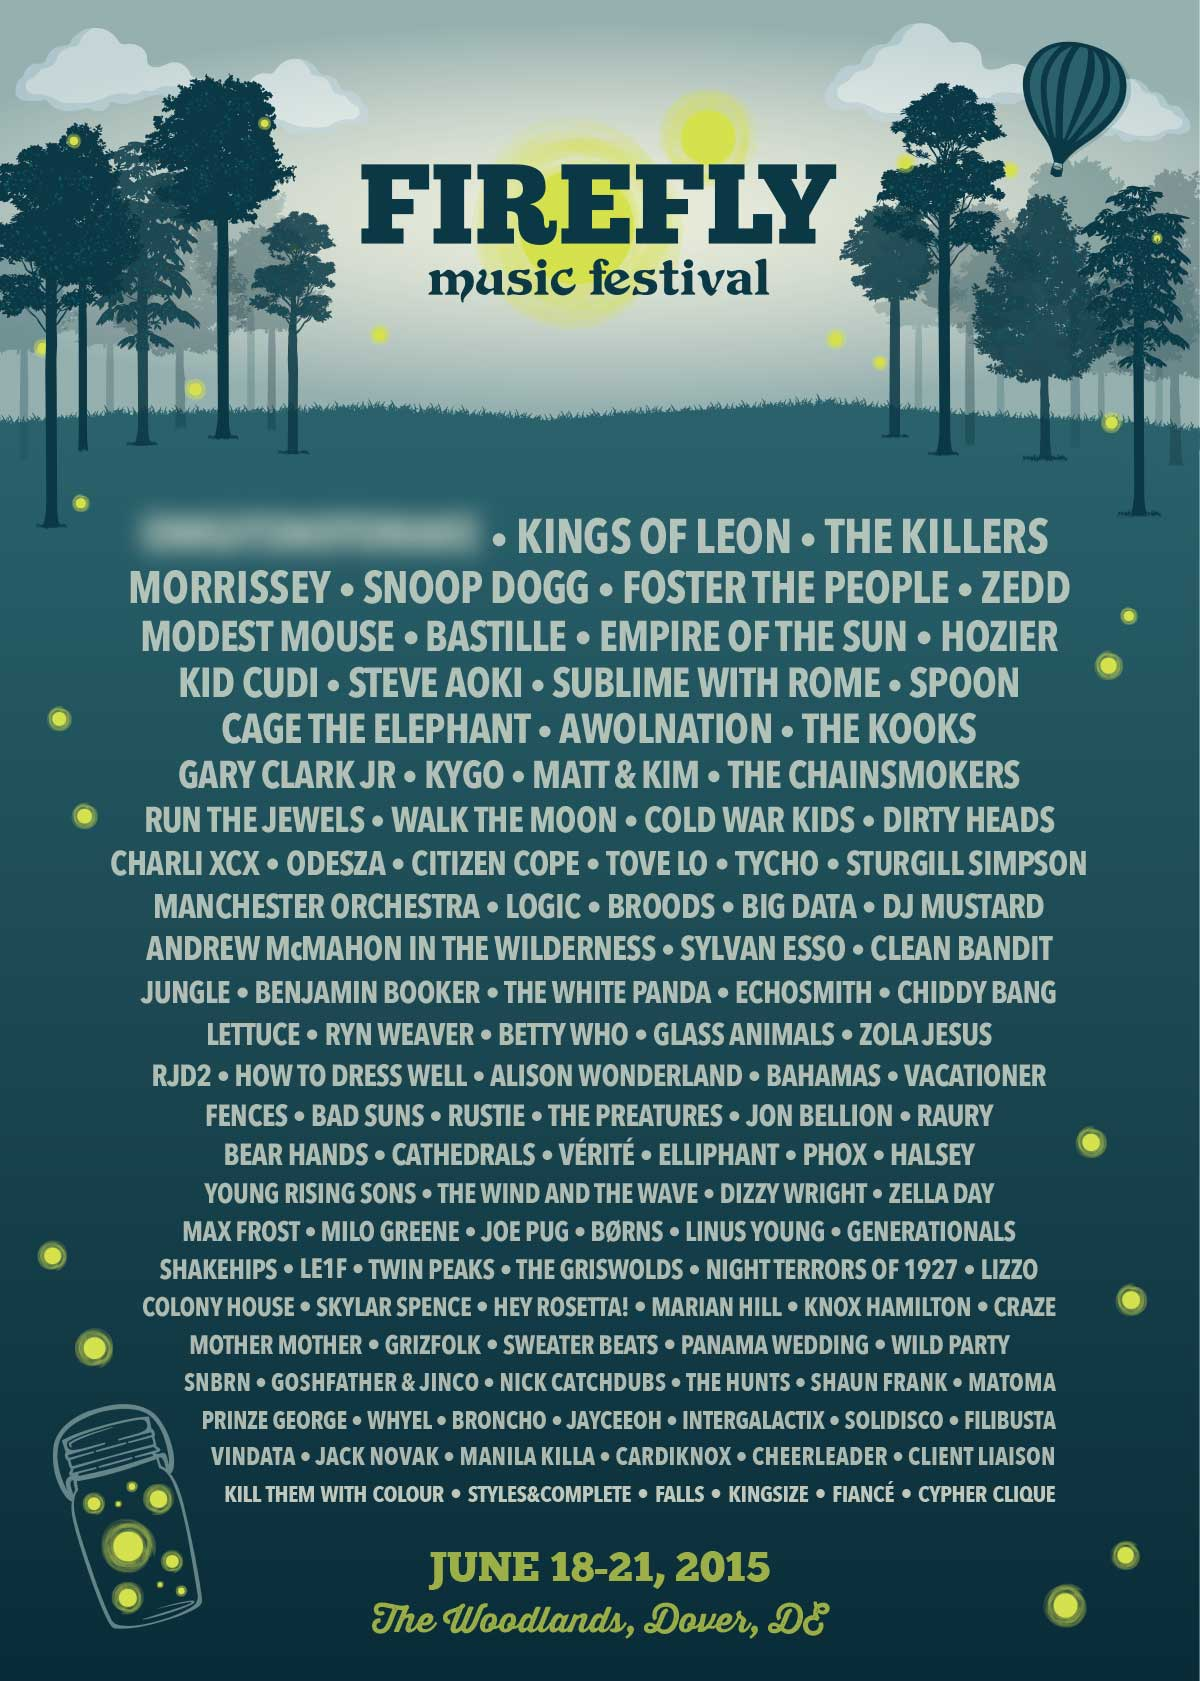 Firefly Confirms 2015 Lineup That Leaked 3 Weeks Ago